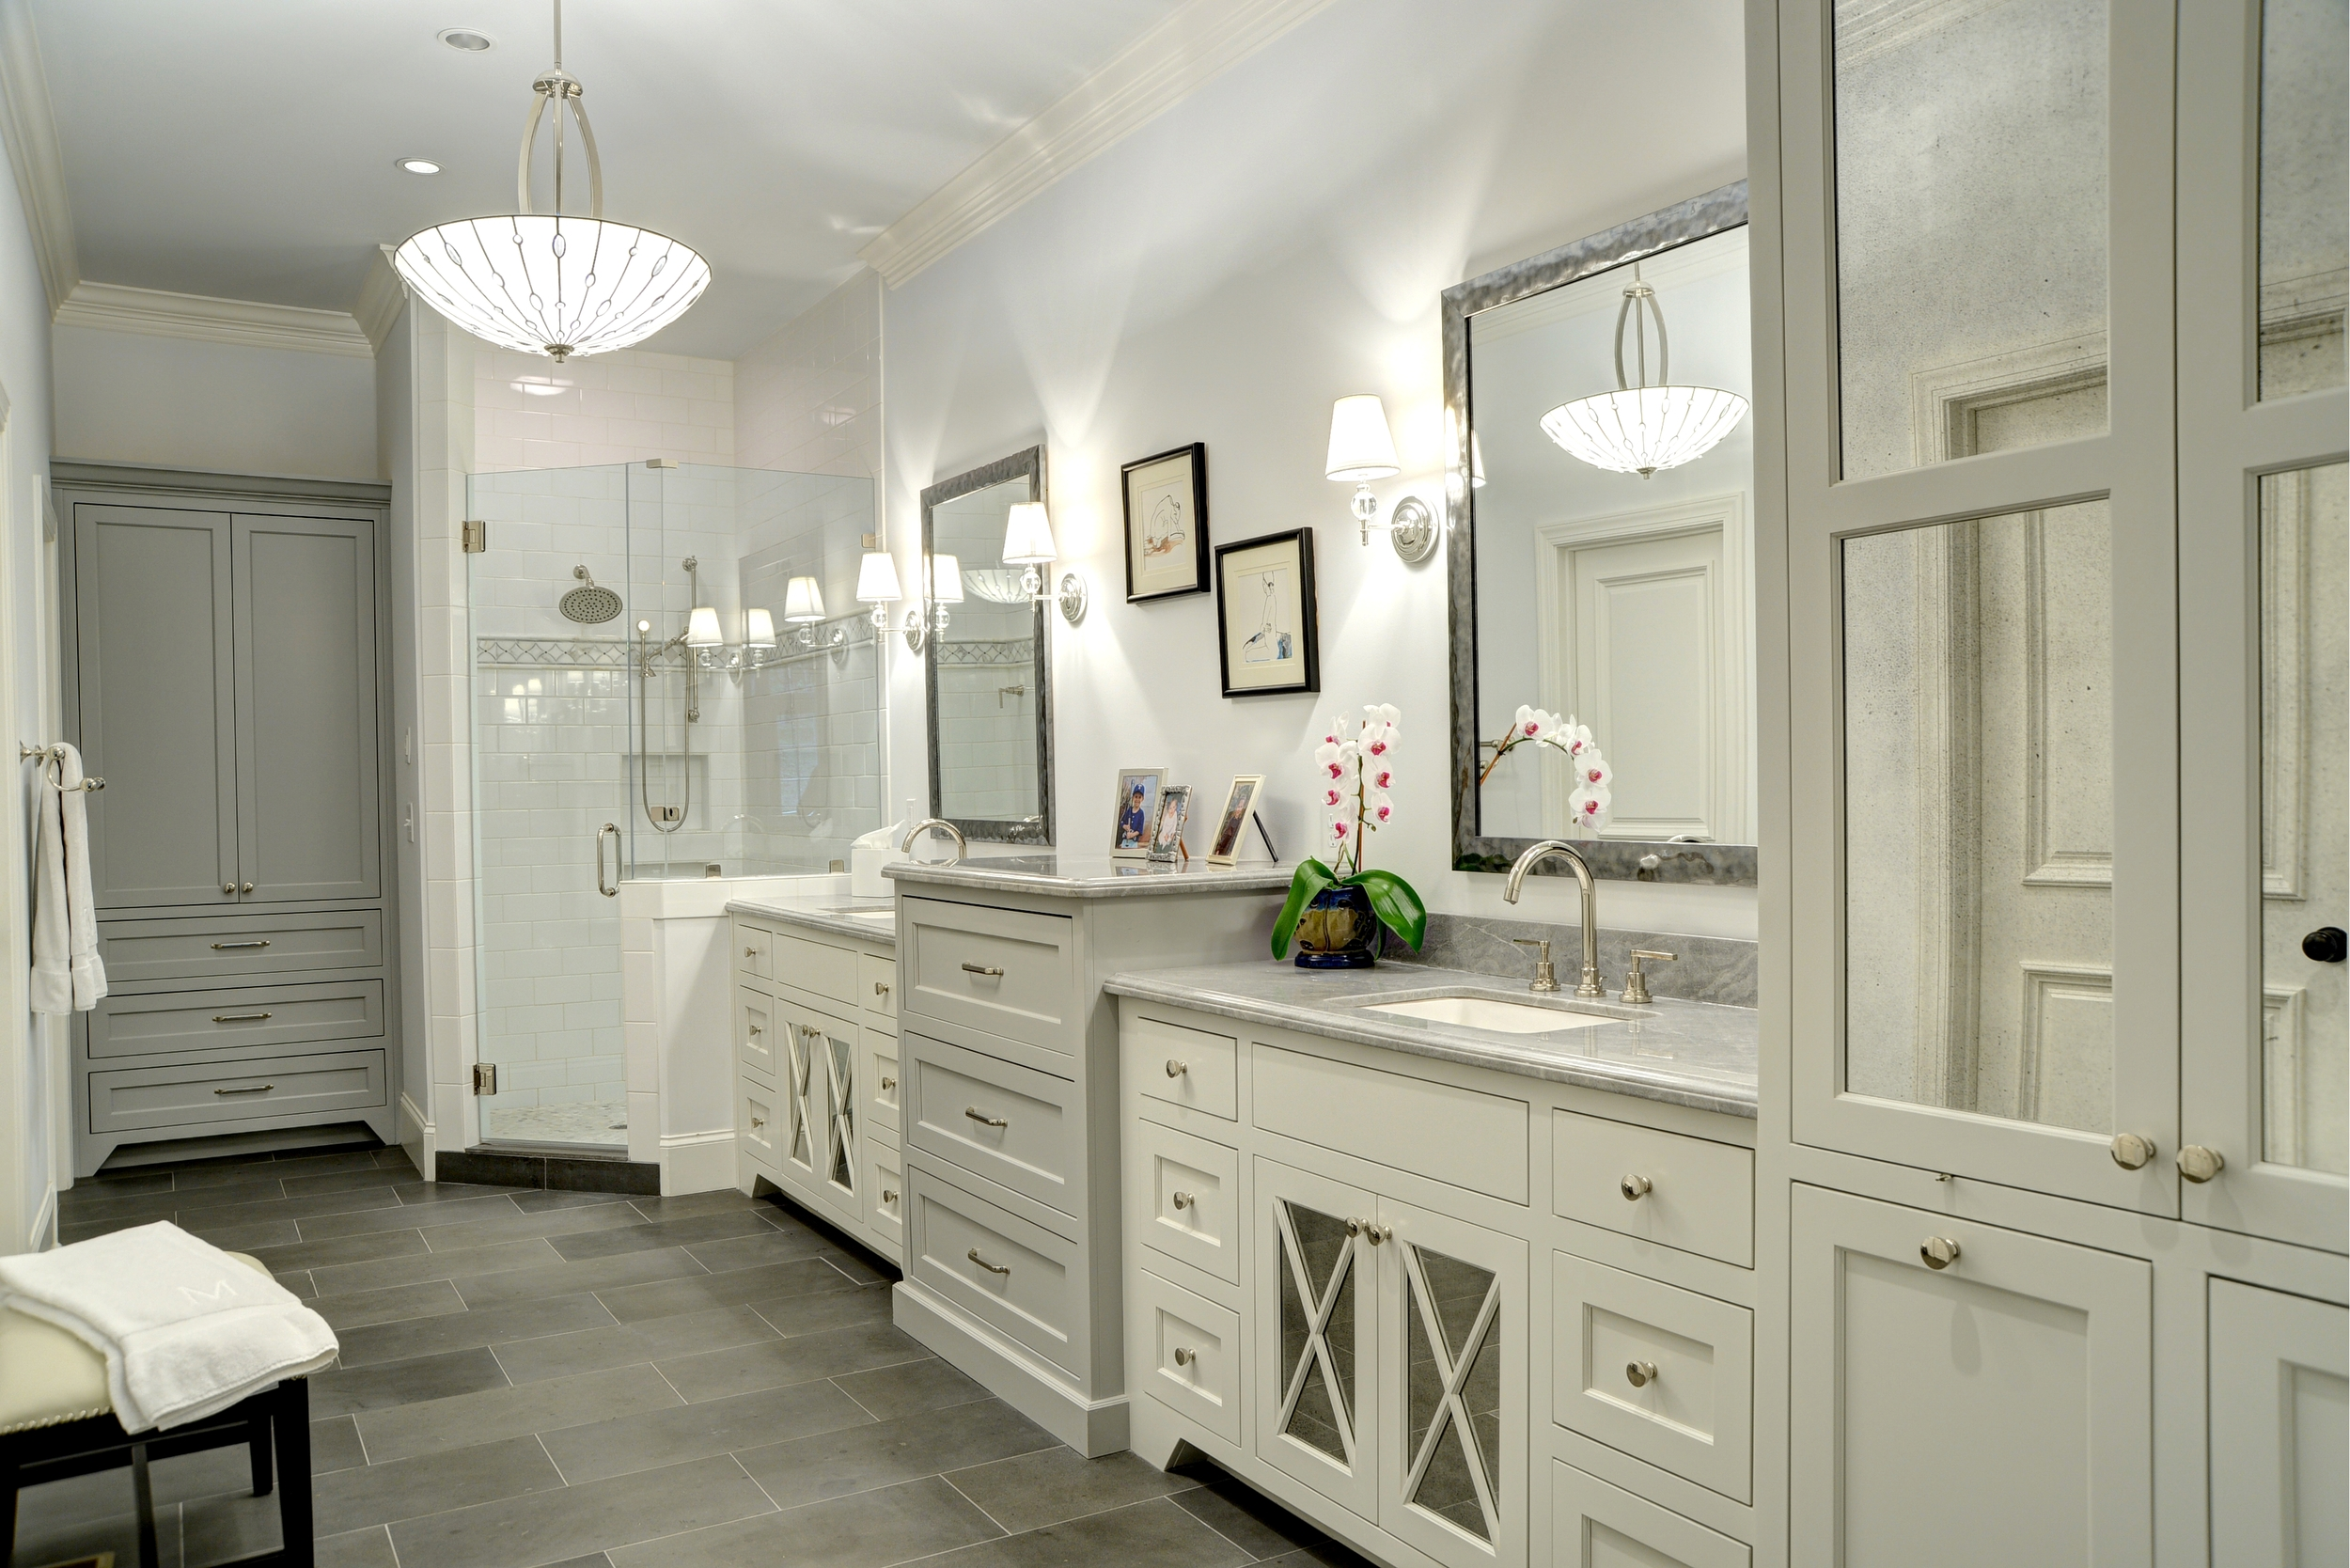 Master Bathroom Kitchen whitewater creek master bath & kitchen design — the consulting house